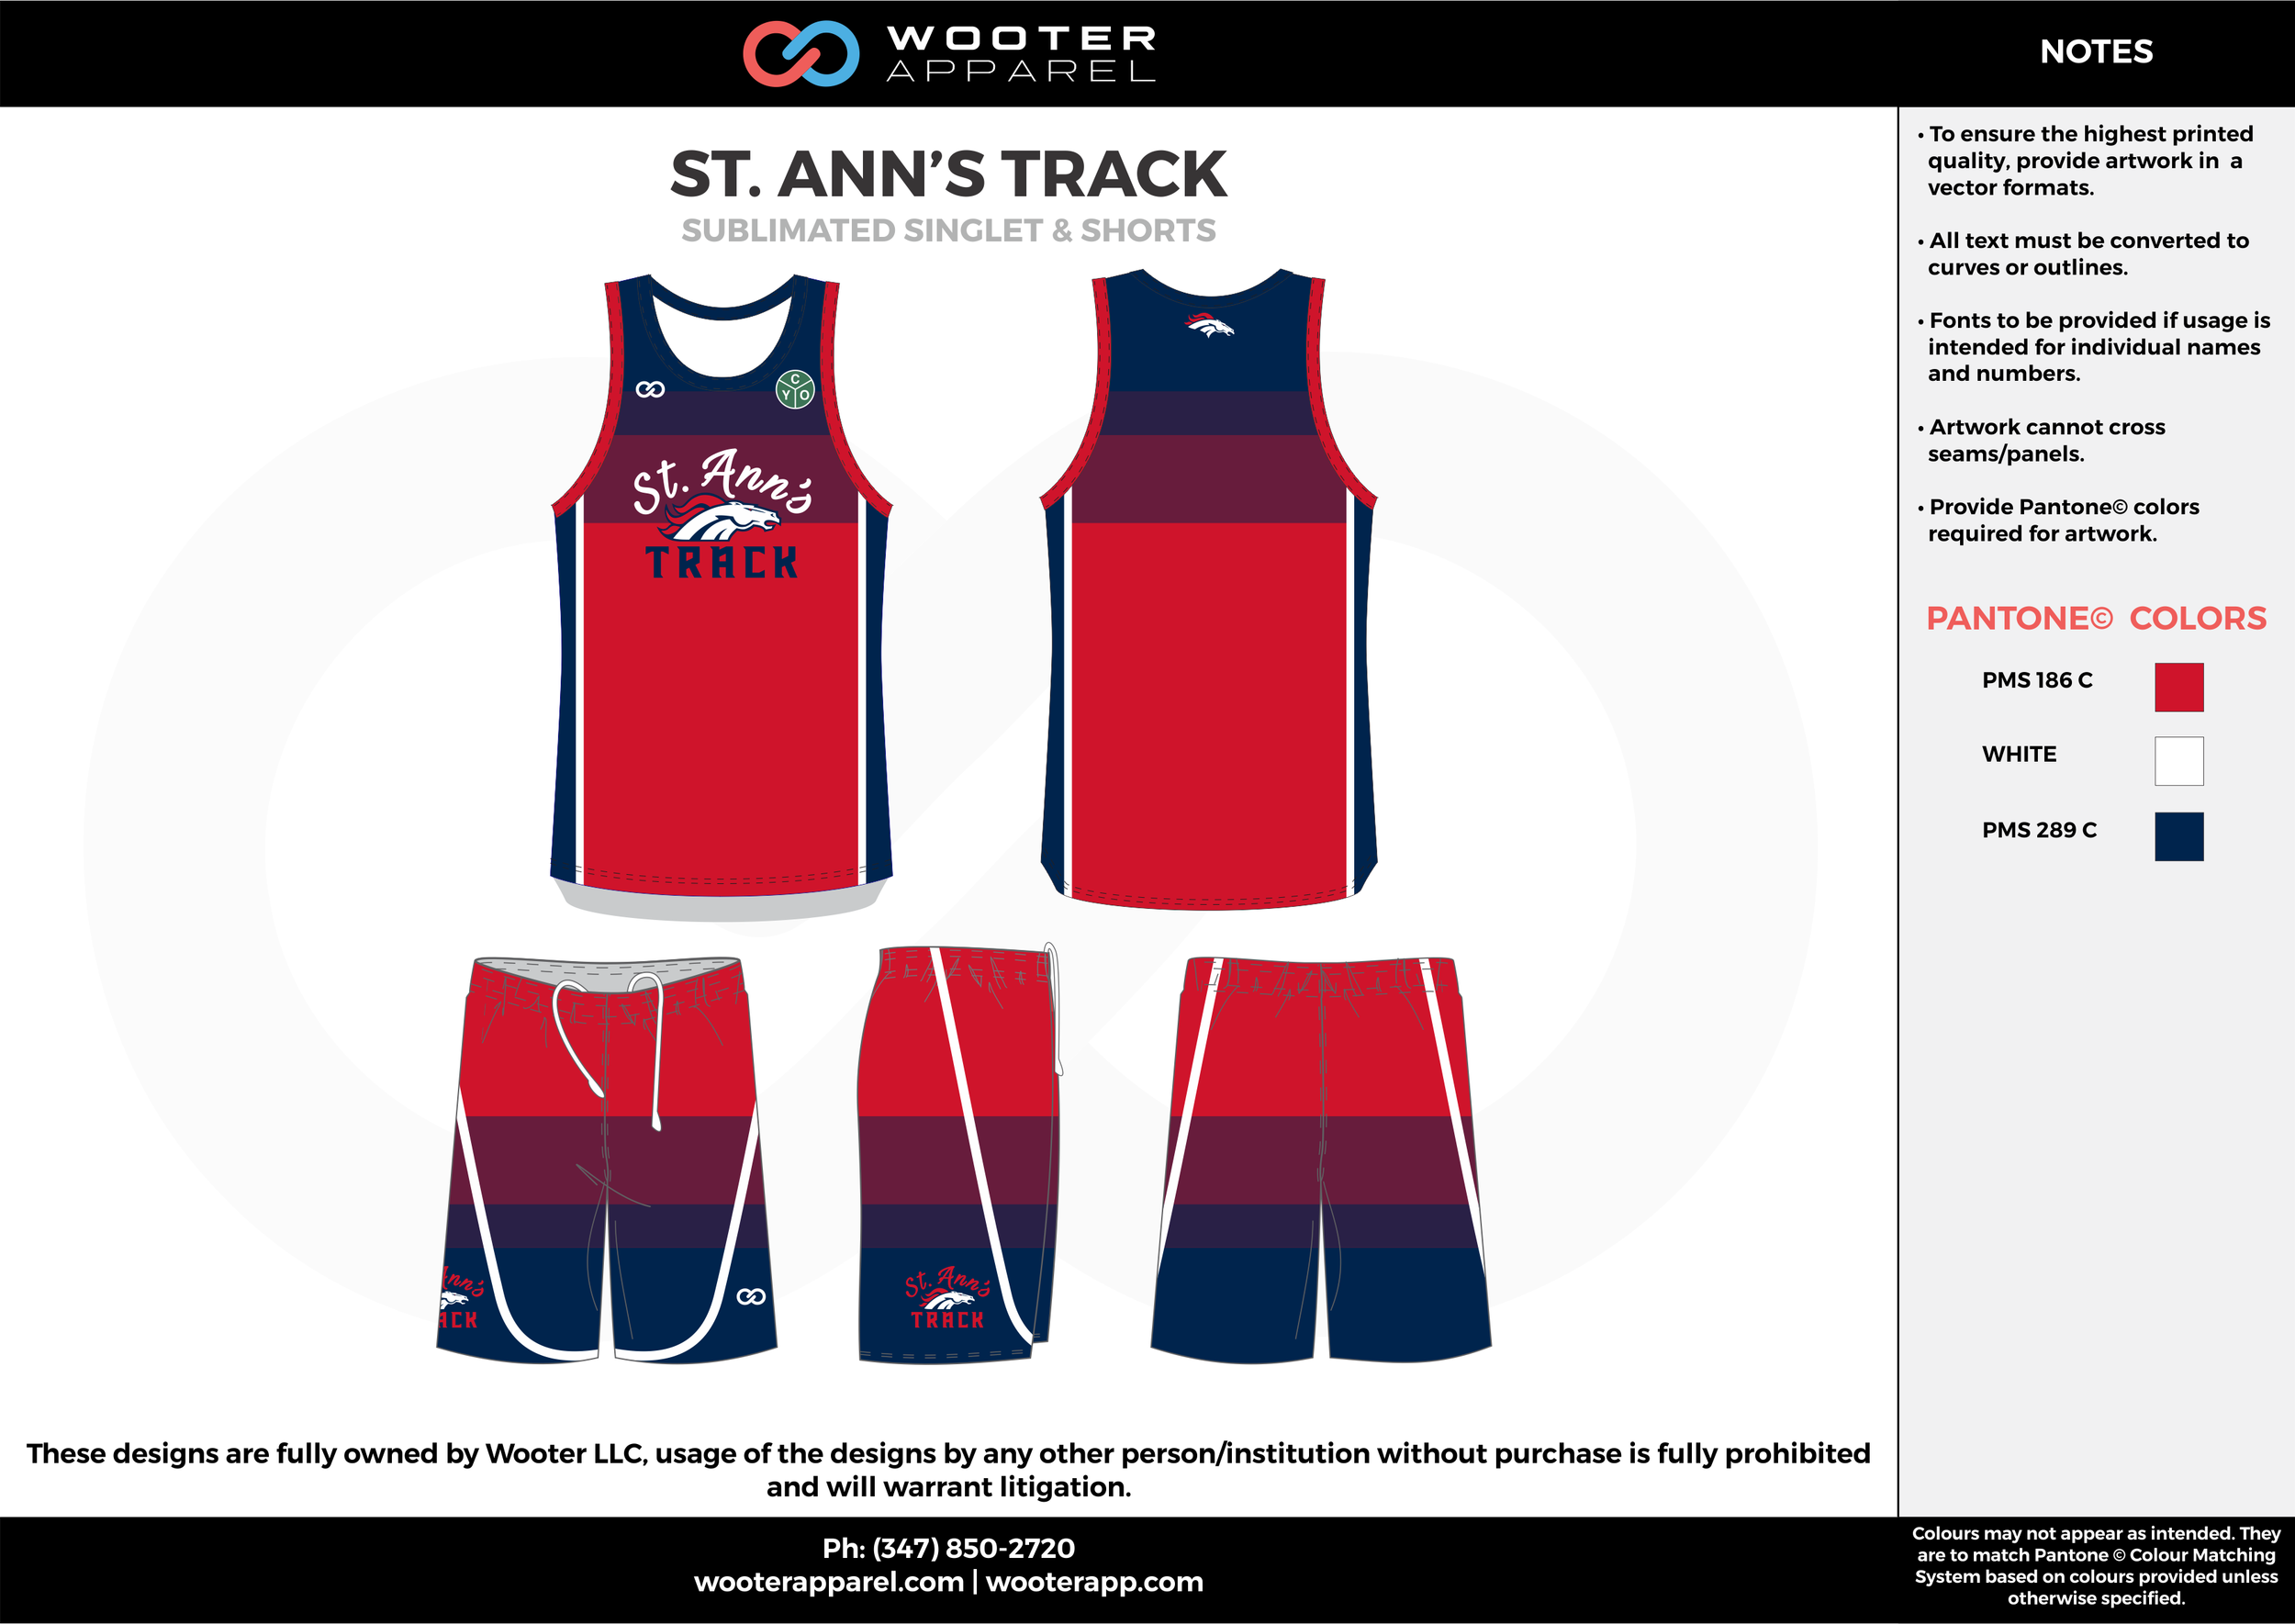 ST. ANN'S TRACK Red Blue and White Sublimated Basketball Track Uniforms Jerseys and Shorts